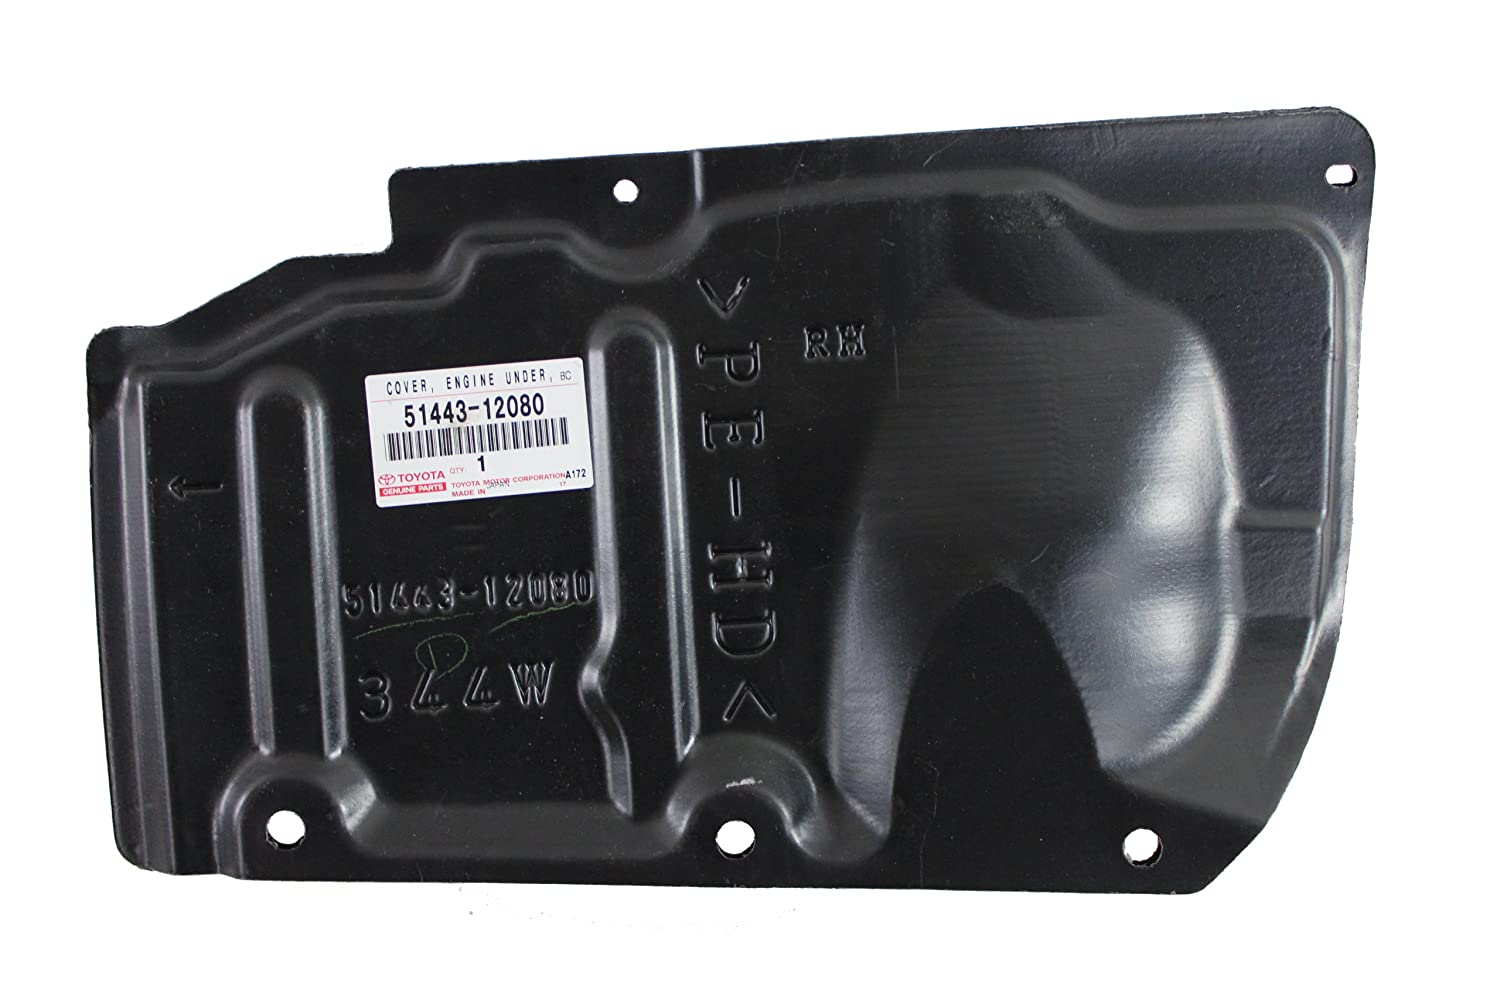 Genuine Toyota Parts 51443-12080 Lower Engine Cover